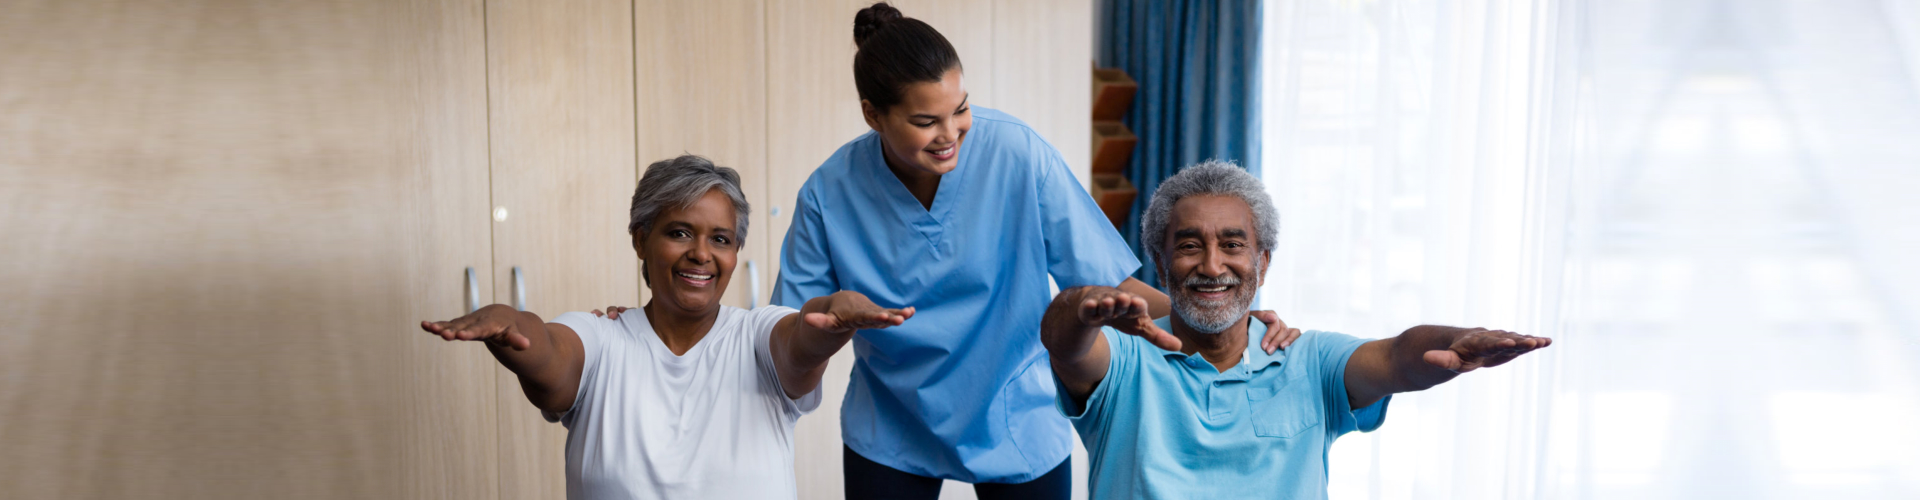 two seniors exercise with caregiver